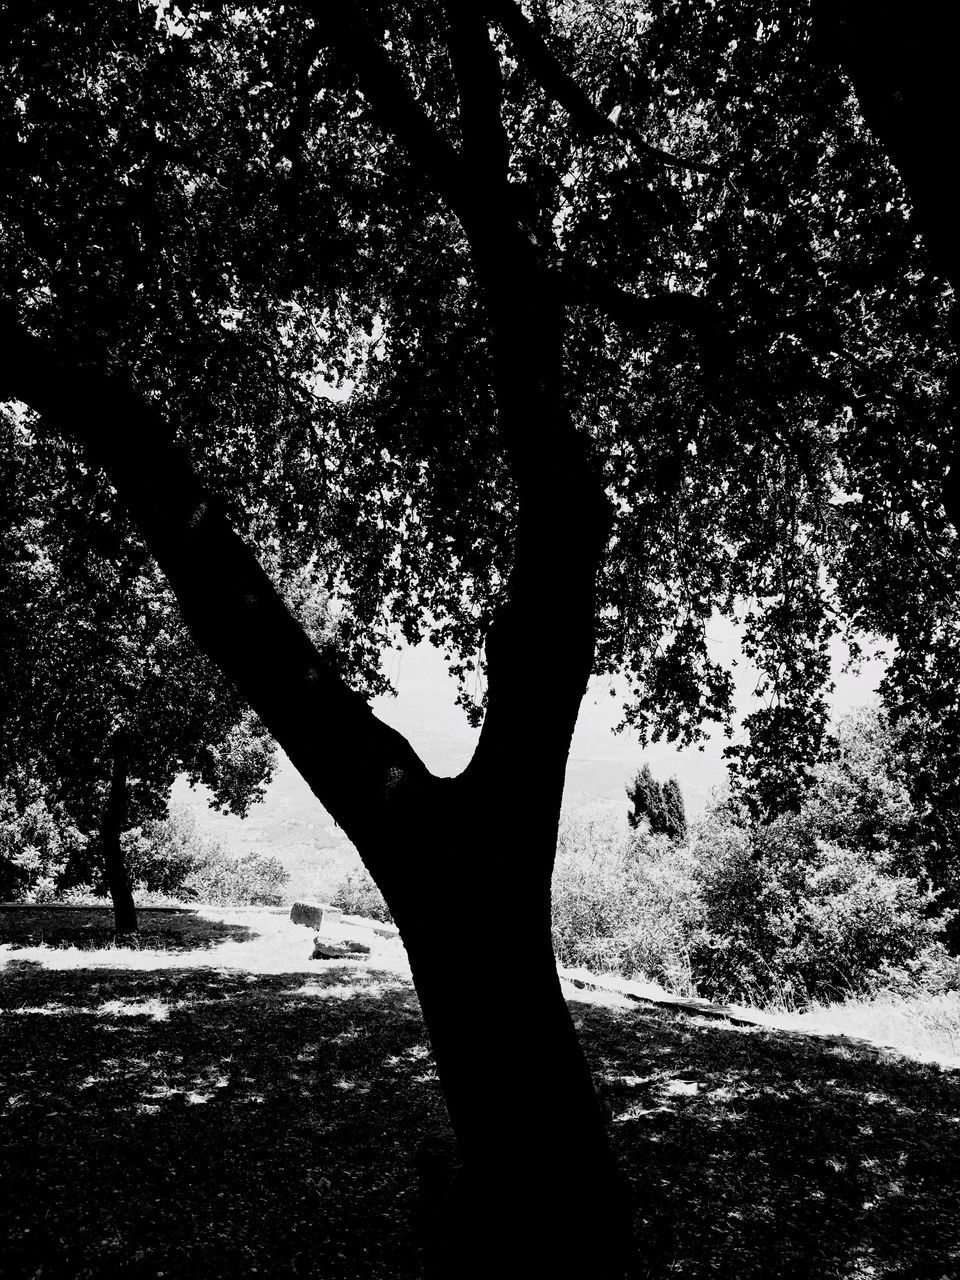 tree, outdoors, tree trunk, nature, growth, branch, tranquility, day, silhouette, beauty in nature, no people, sky, close-up